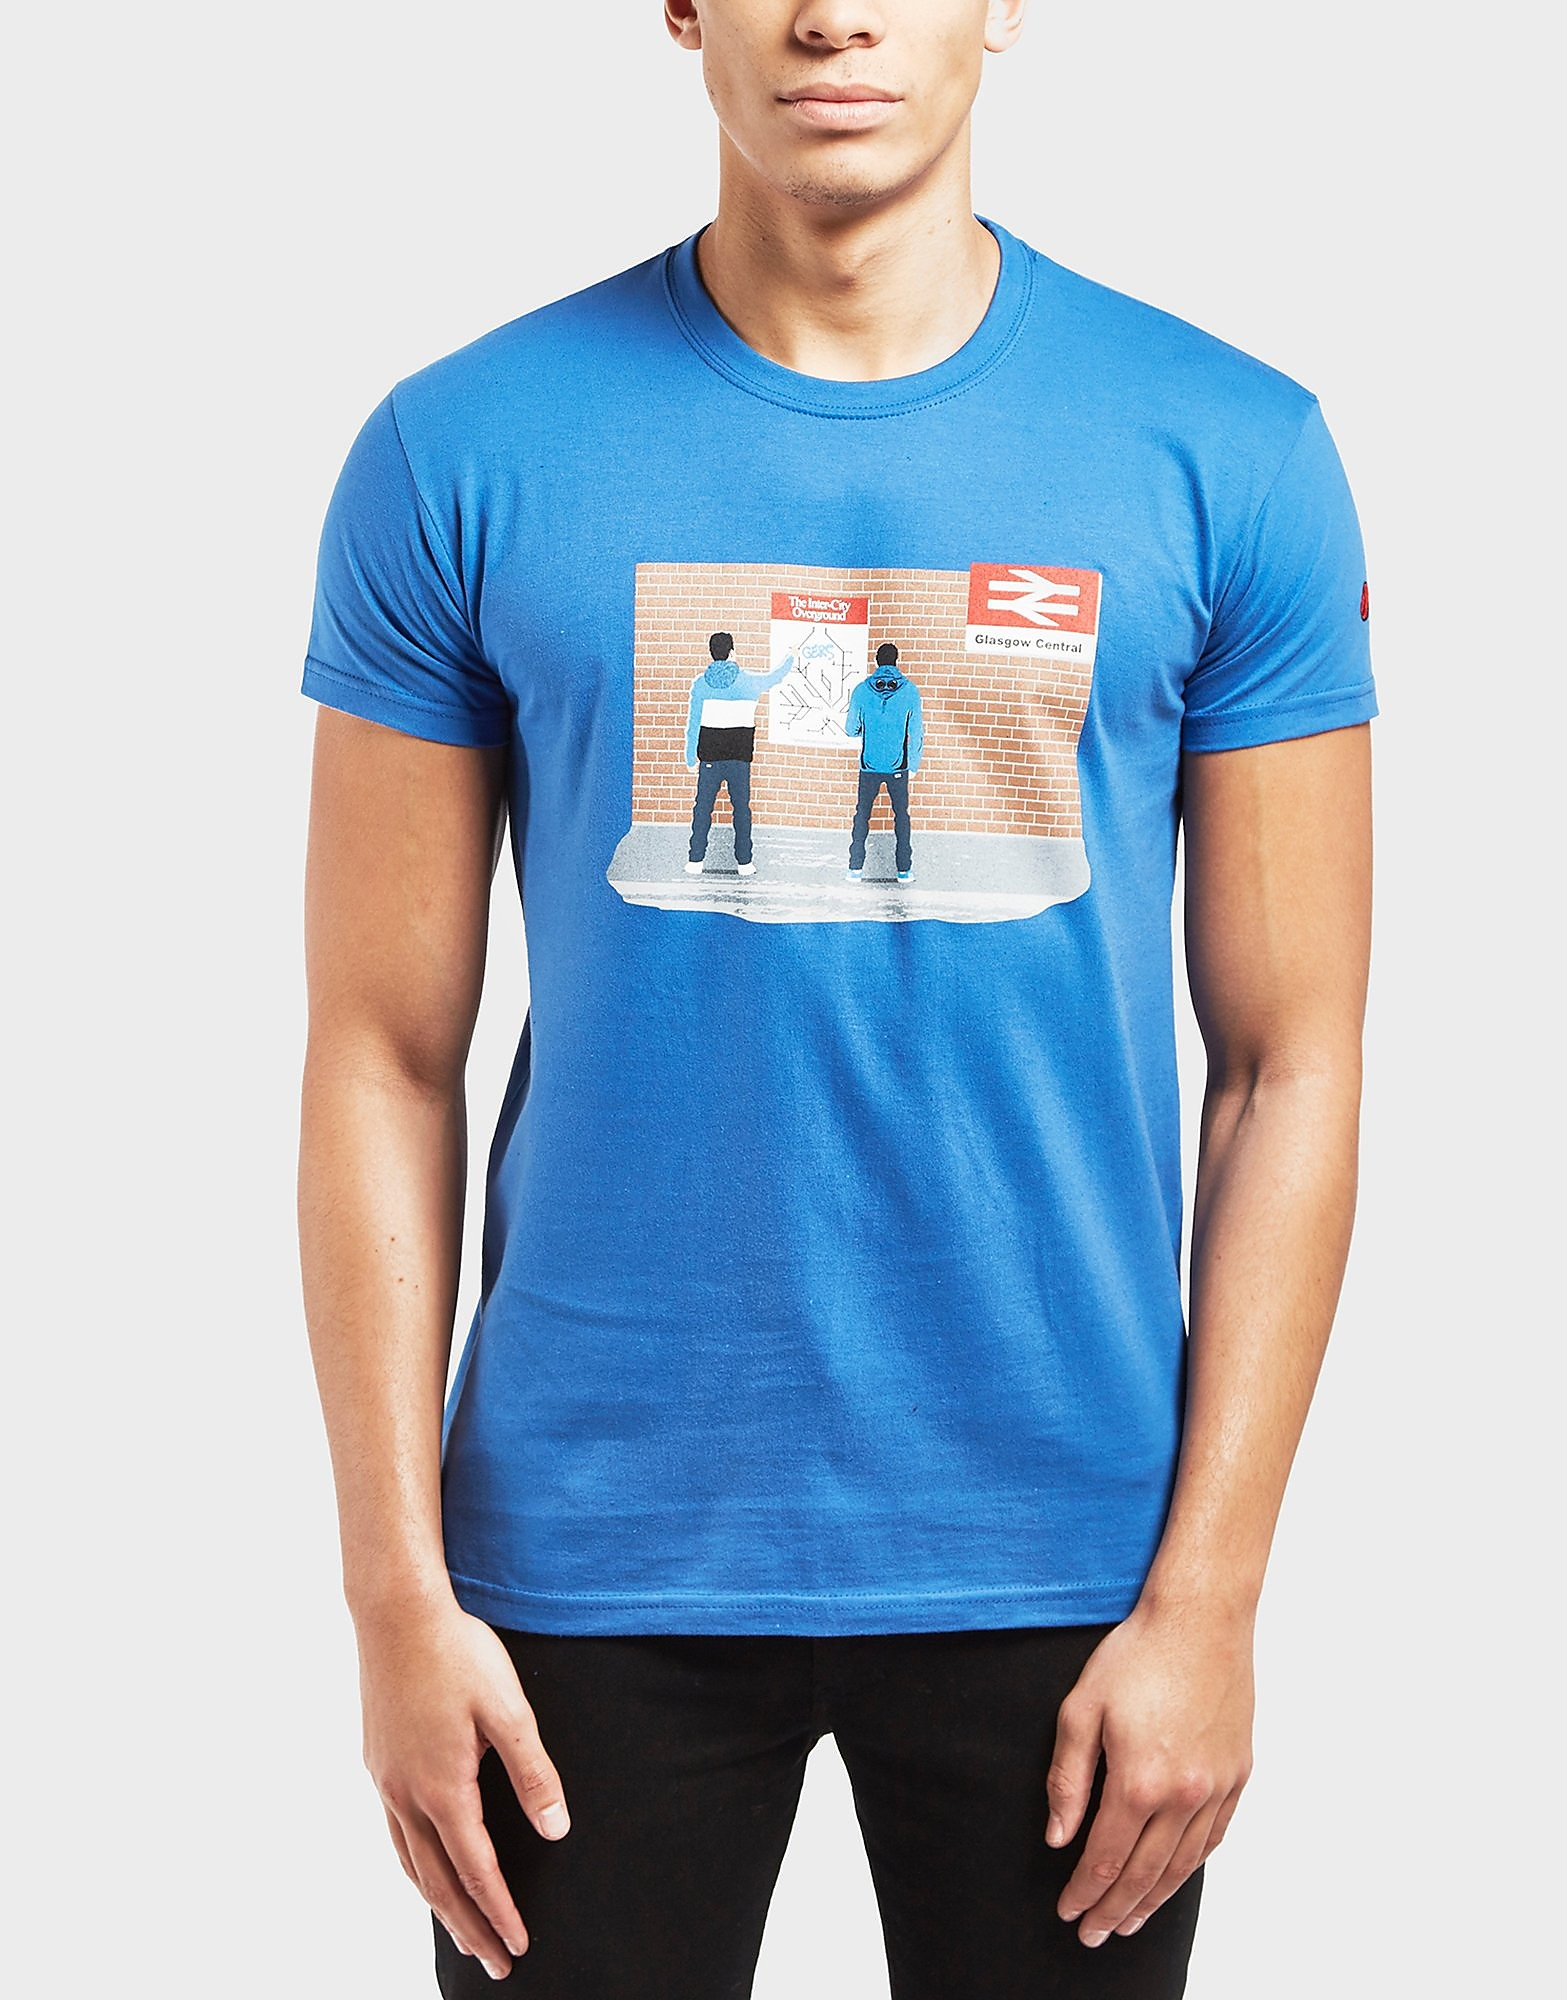 80s Casuals Gers Station Short Sleeve T-Shirt - Exclusive